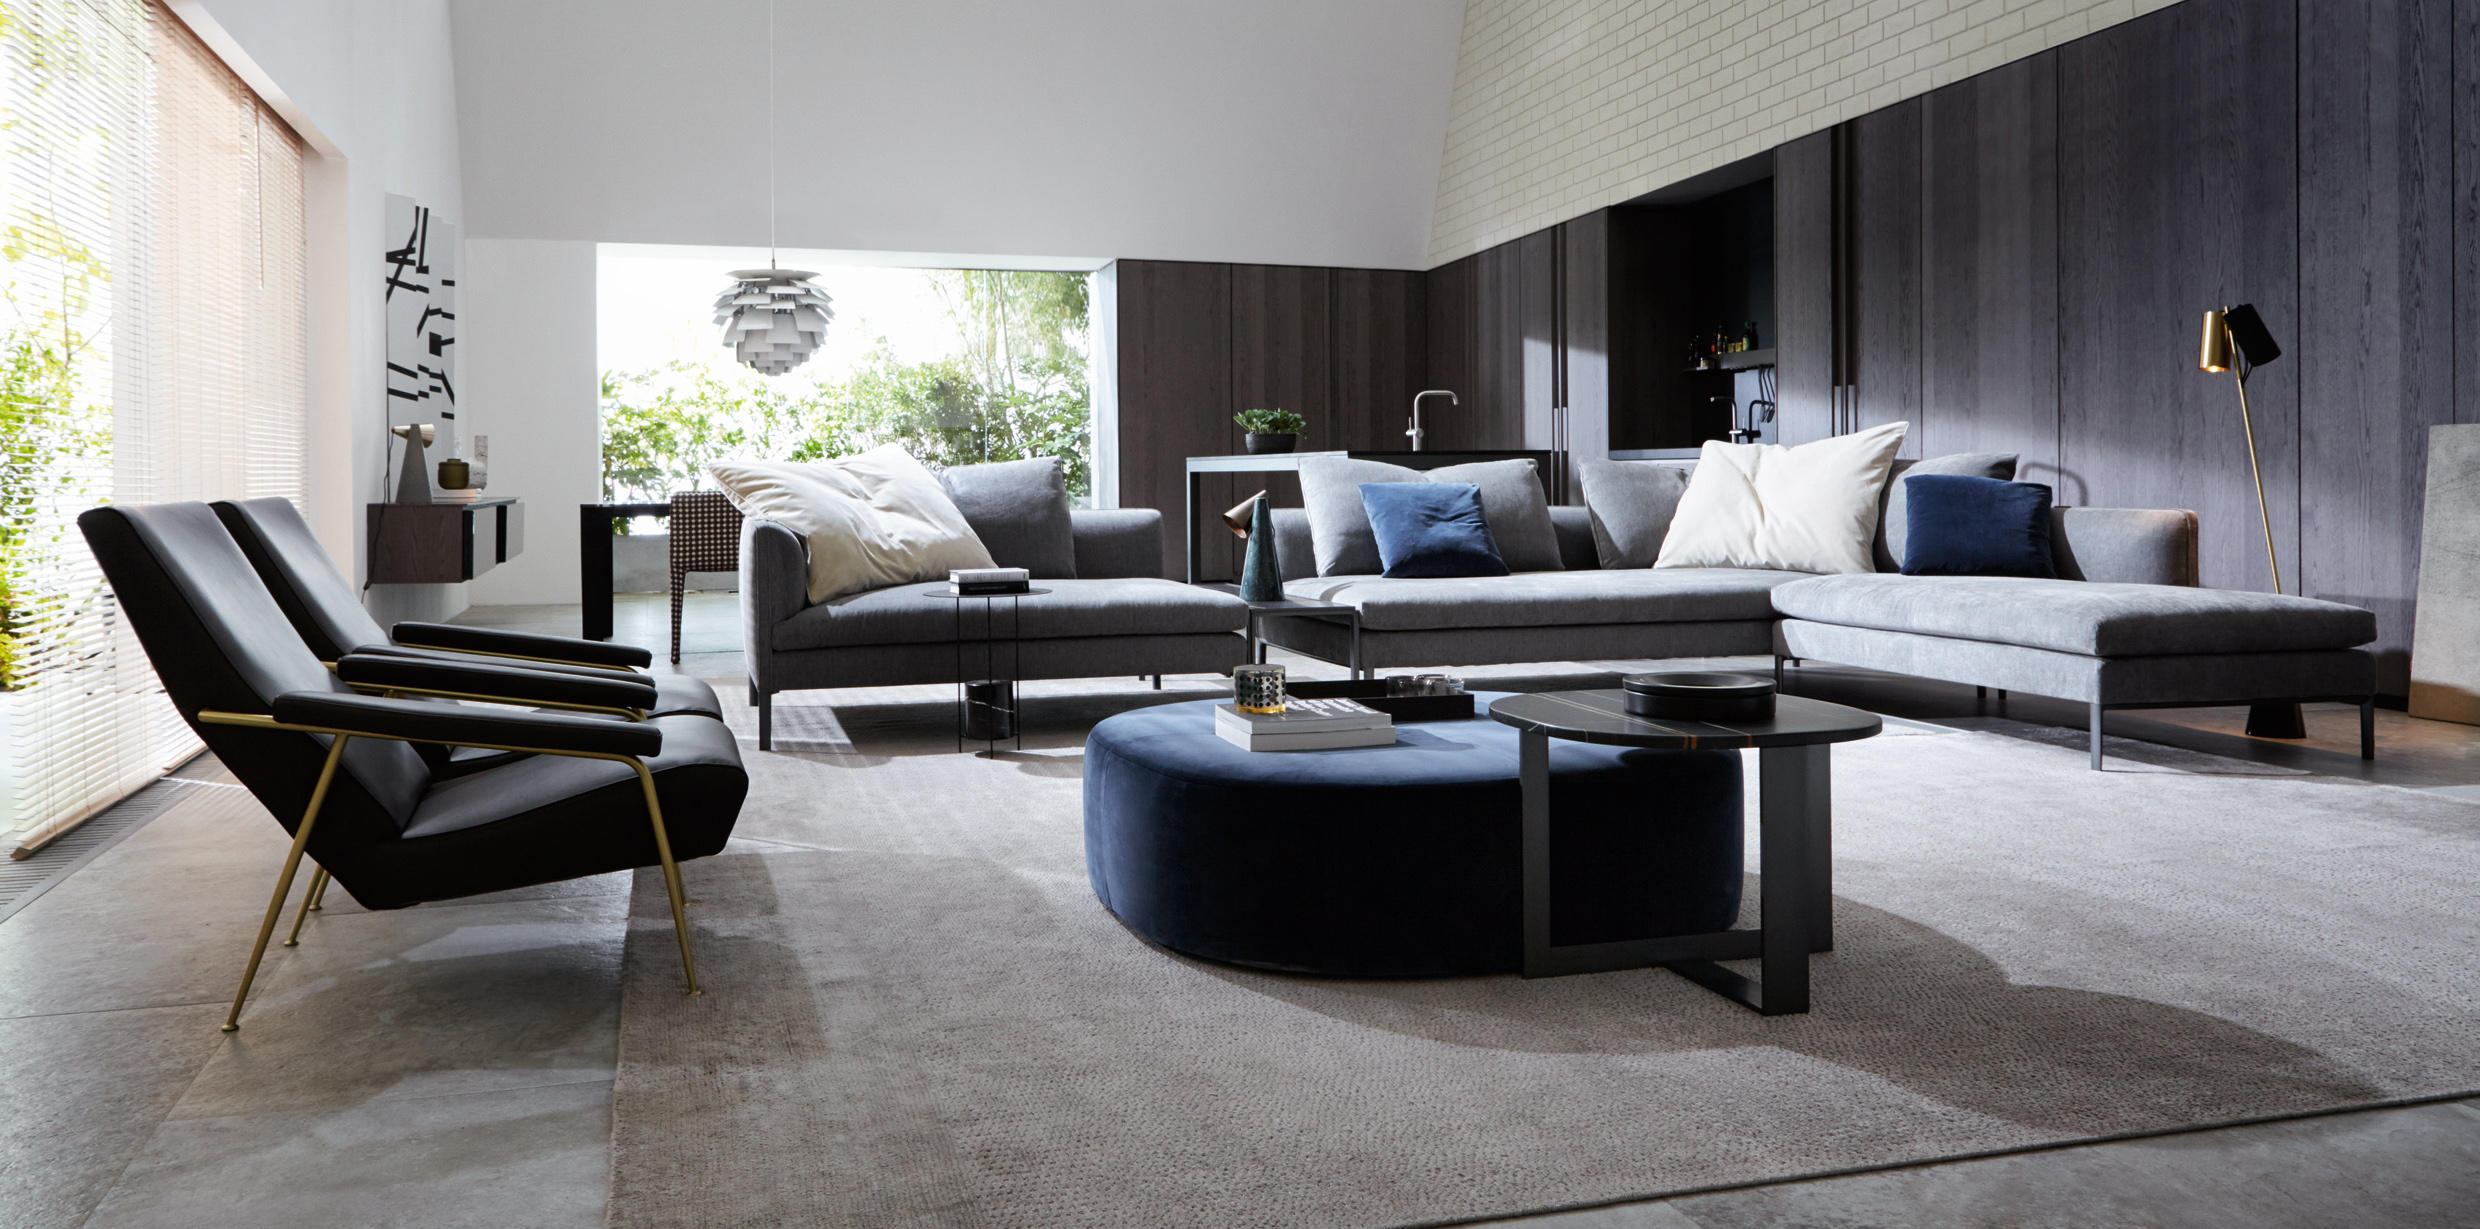 D 153 1 Armchair Lounge Chairs From Molteni Amp C Architonic